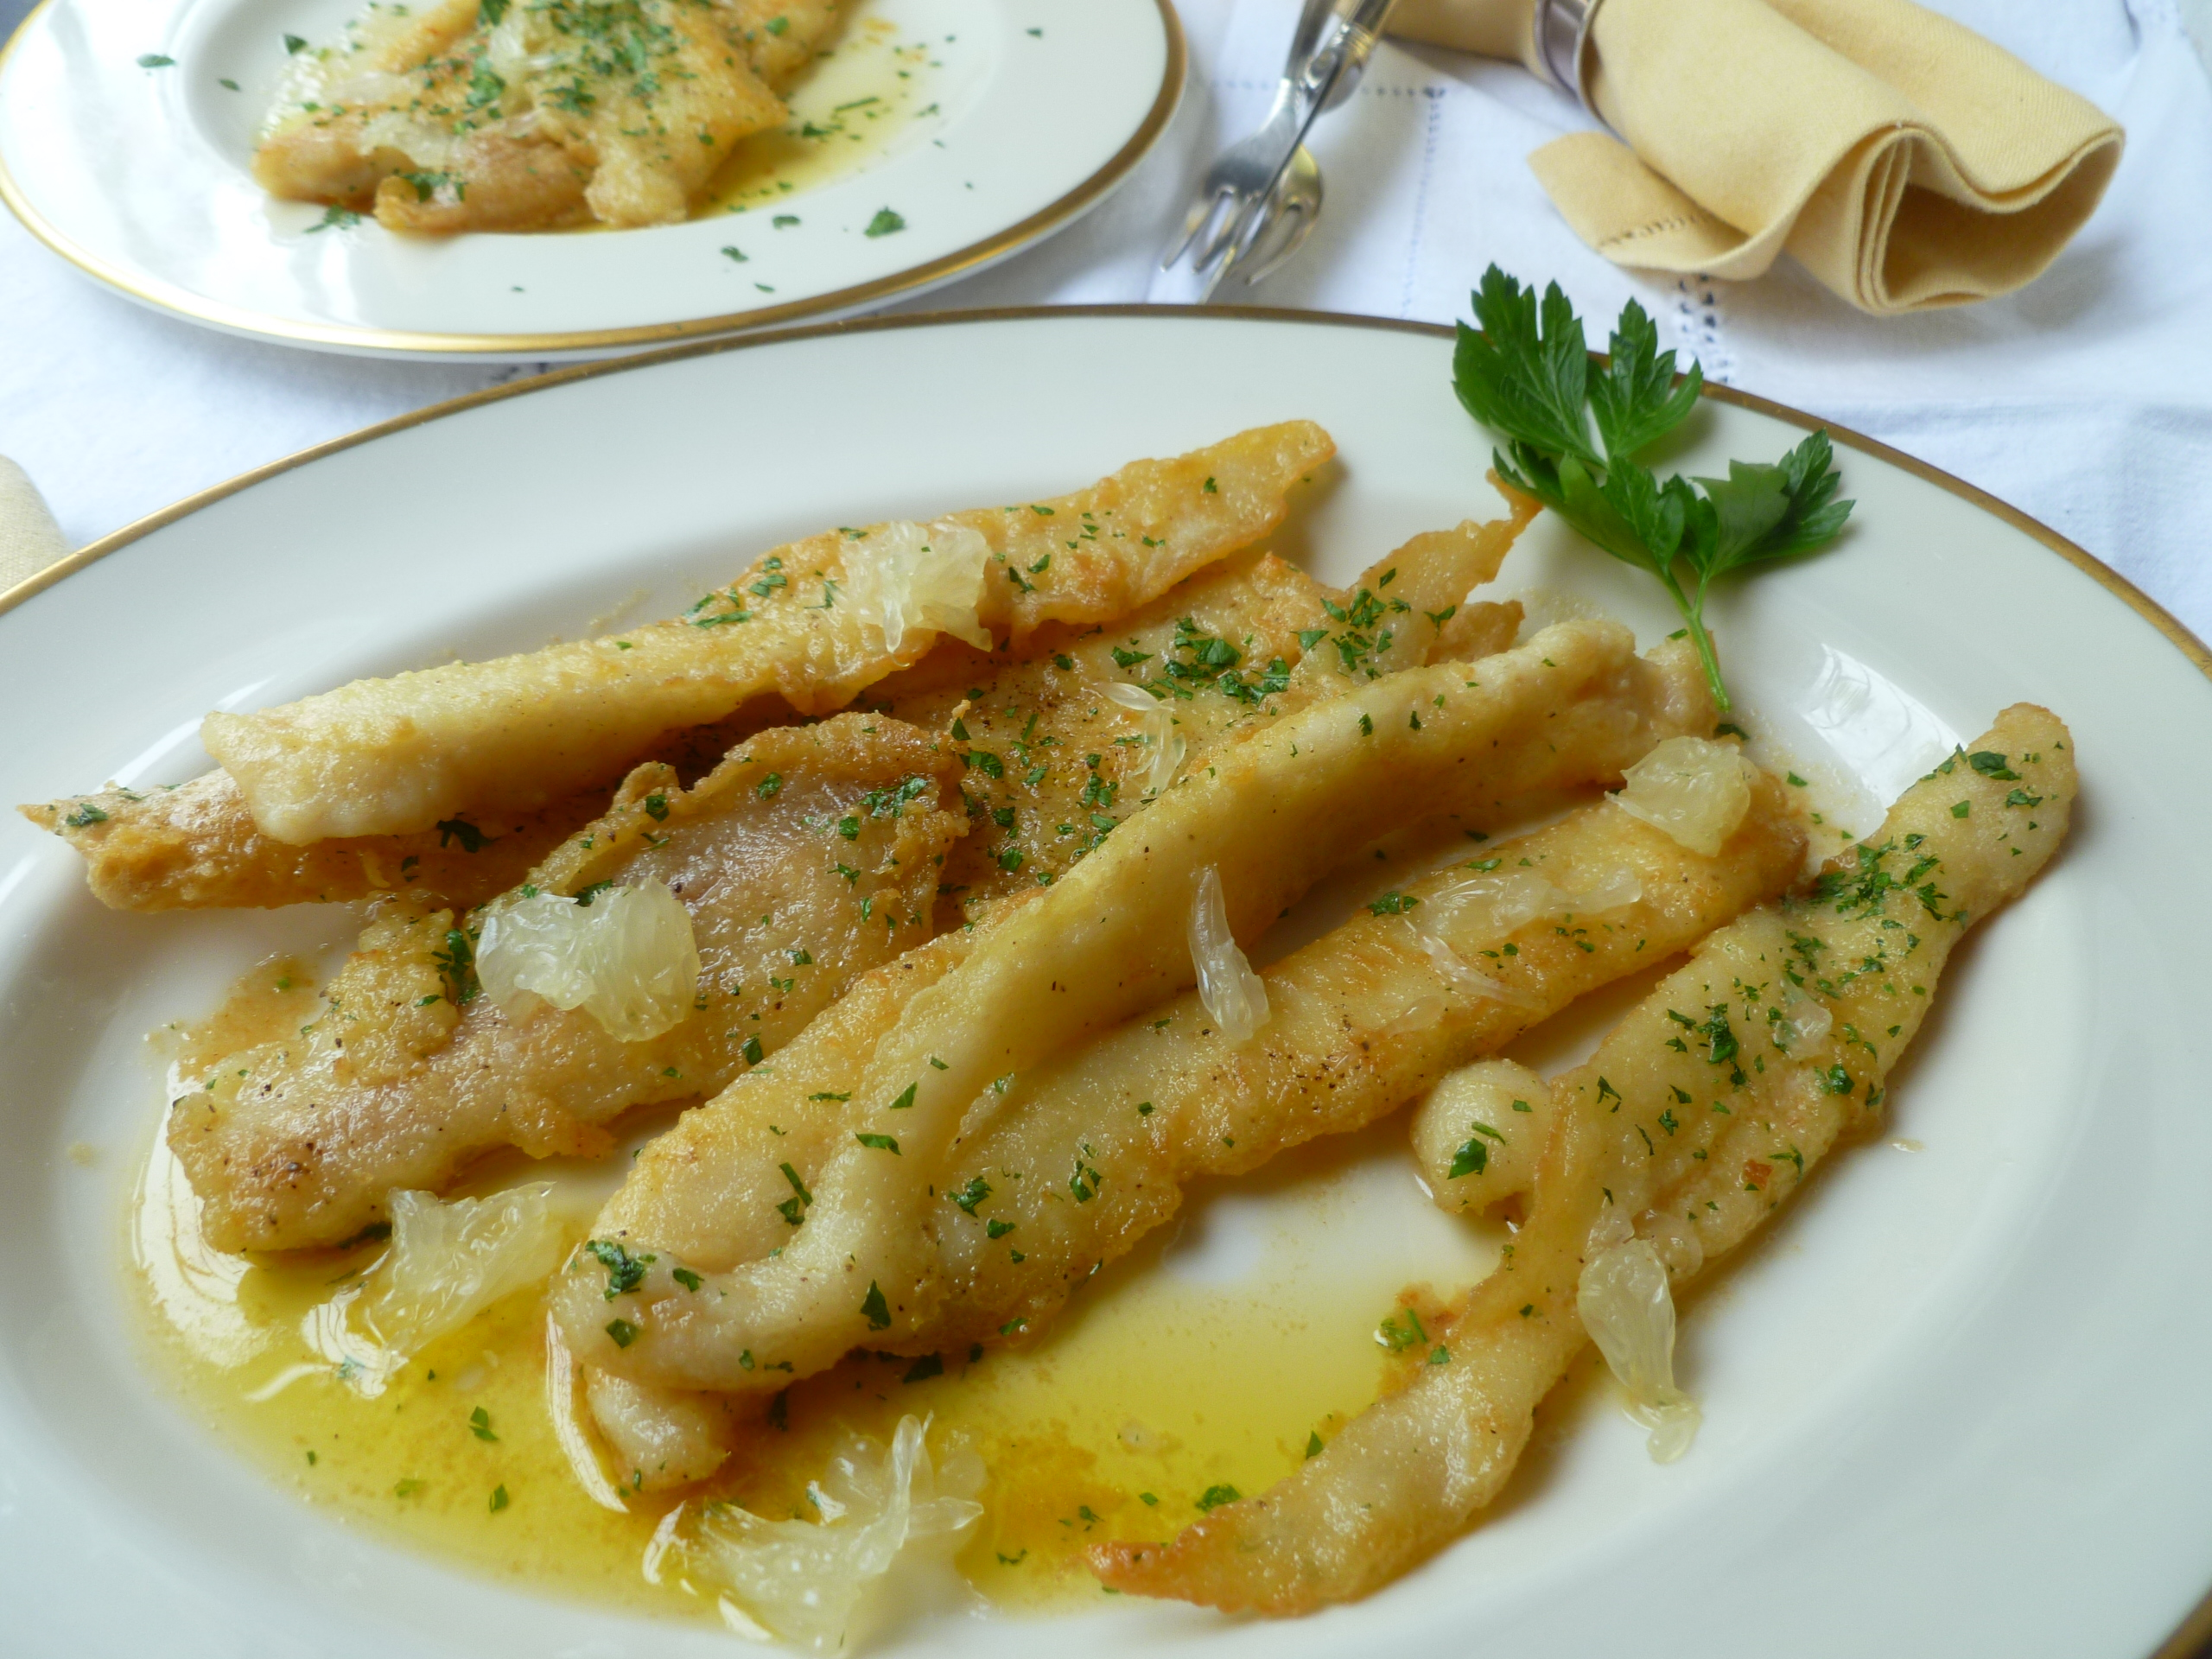 Sole fillet lemon butter sauce for Lemon fish sauce recipe